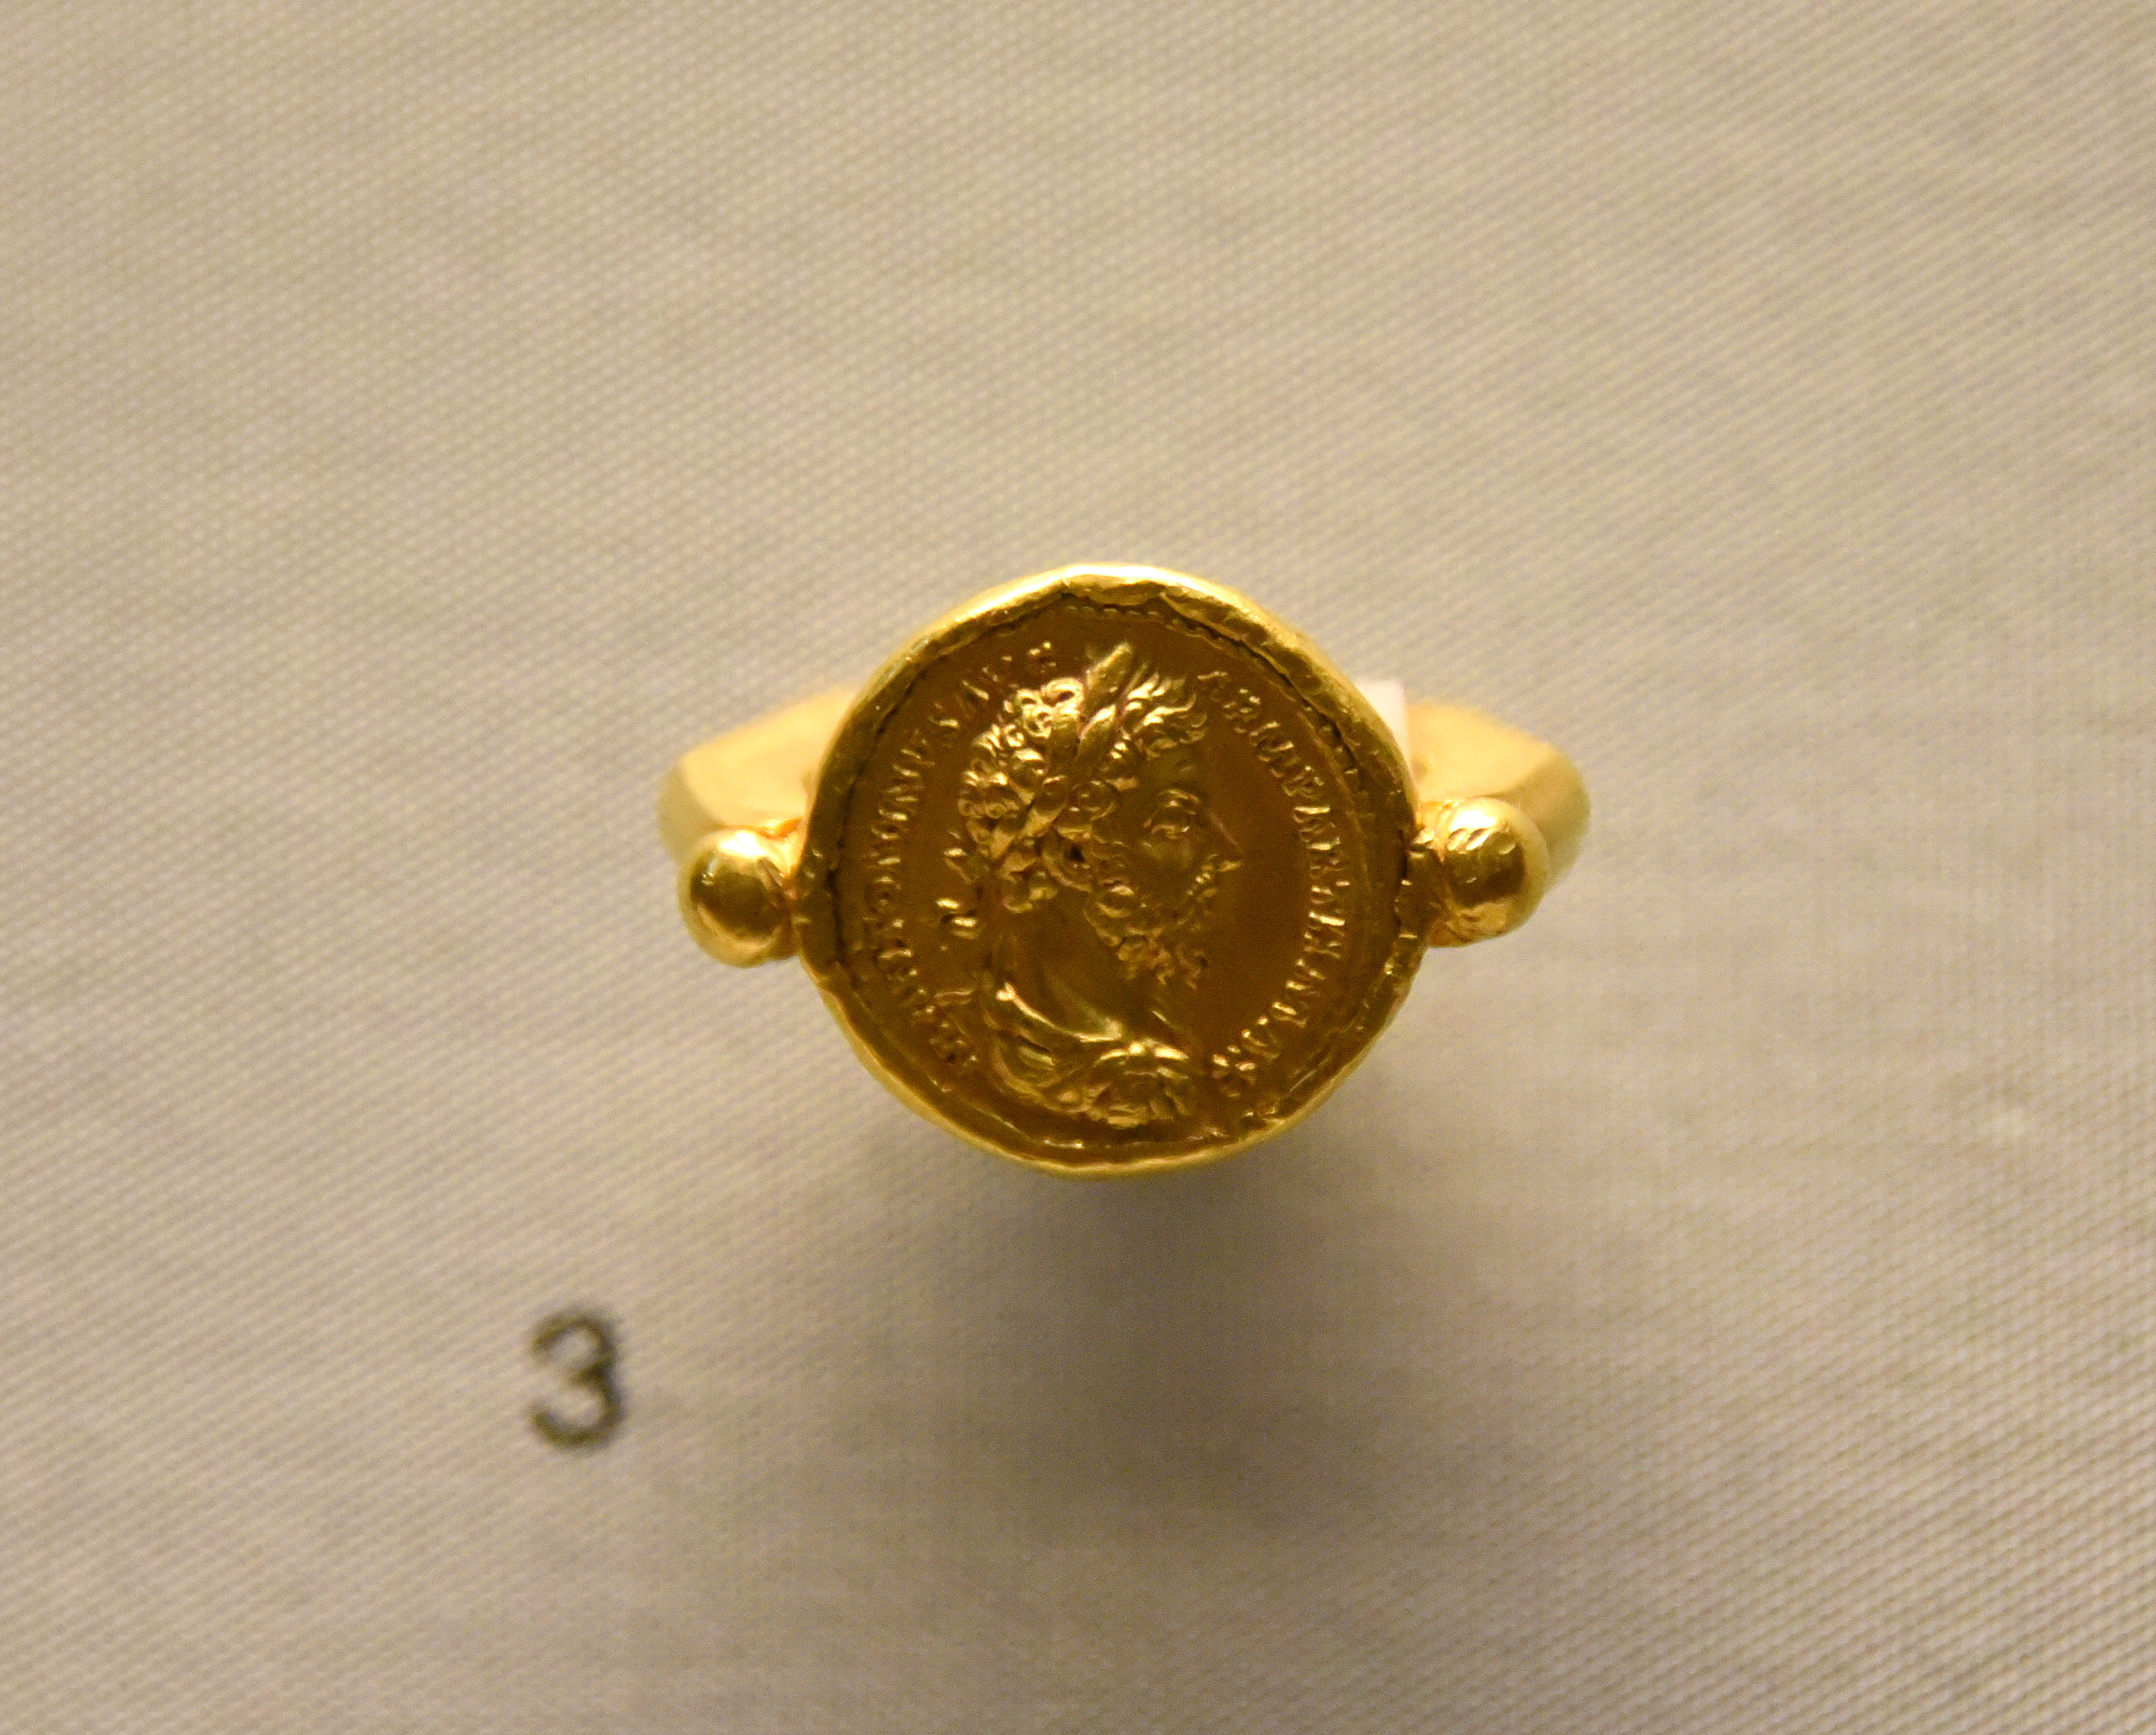 Ancient Roman Rings gold ring with coin of emperor marcus aurelius (illustration